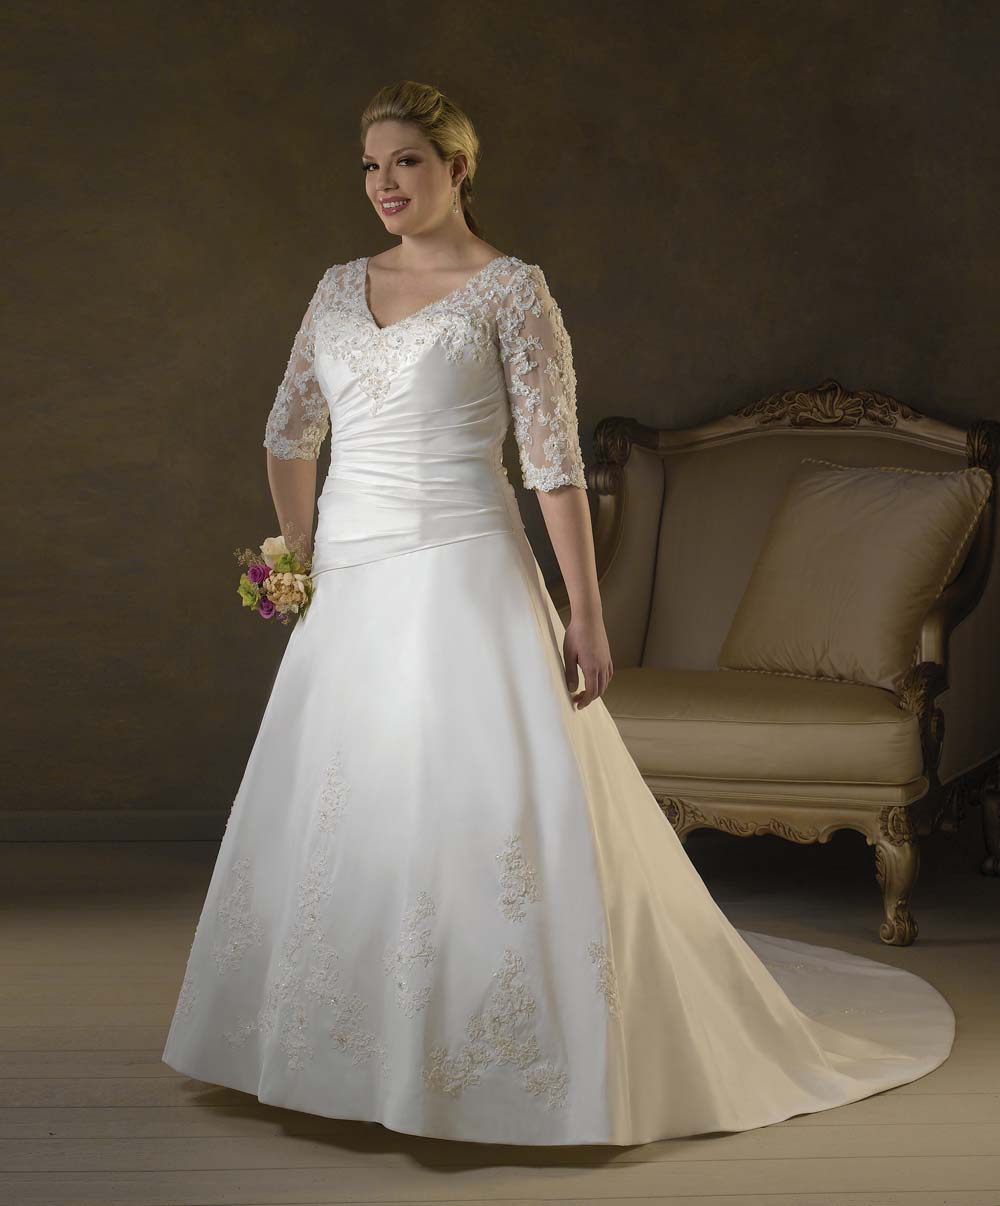 Plus size 3 4 lace sleeves wedding dress gown for Plus size wedding dresses with color and sleeves